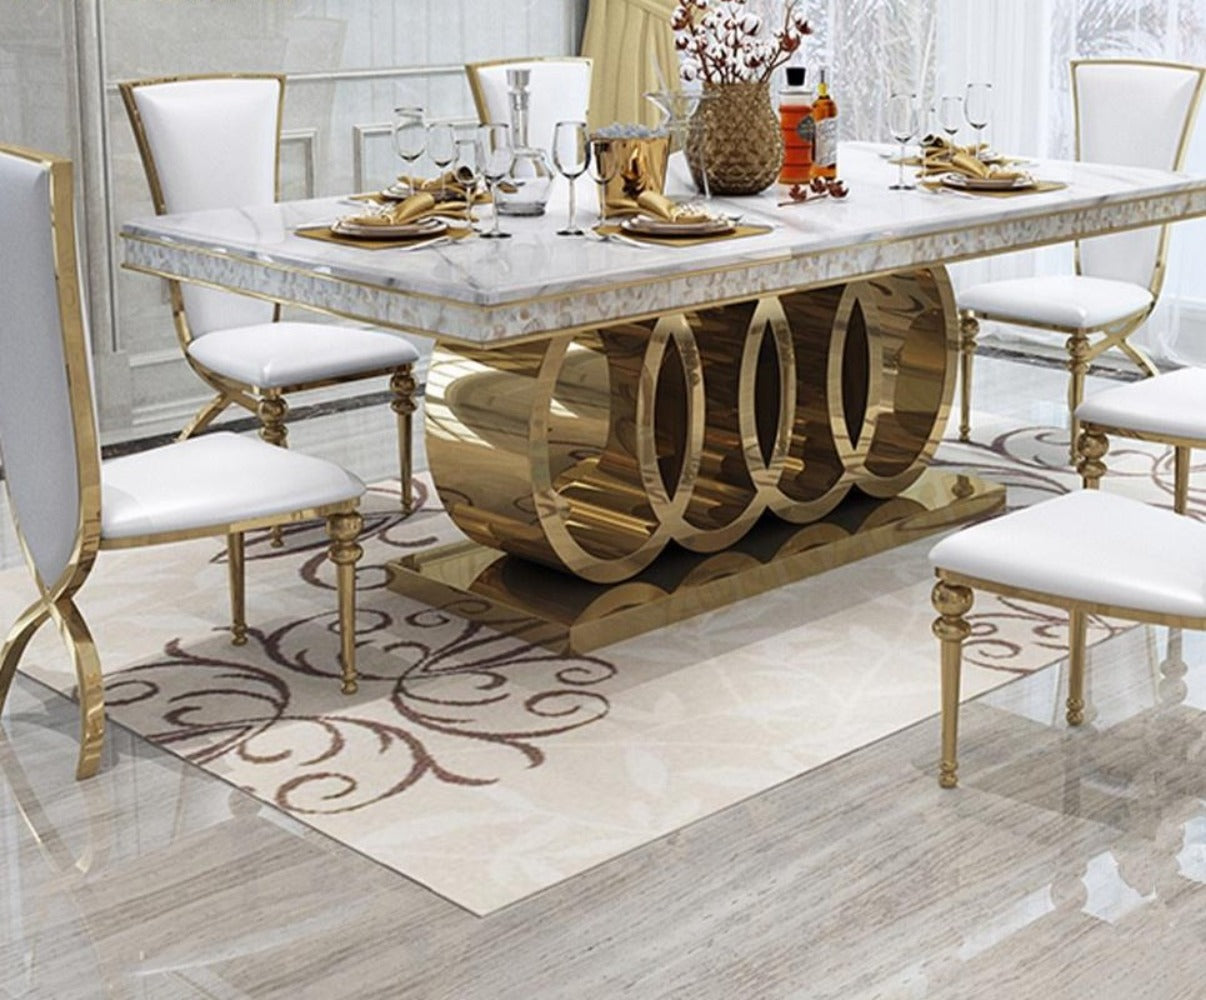 7 Pcs Elegant Designed Rectangular Marble Top Dining Table With 6 Chairs My Aashis